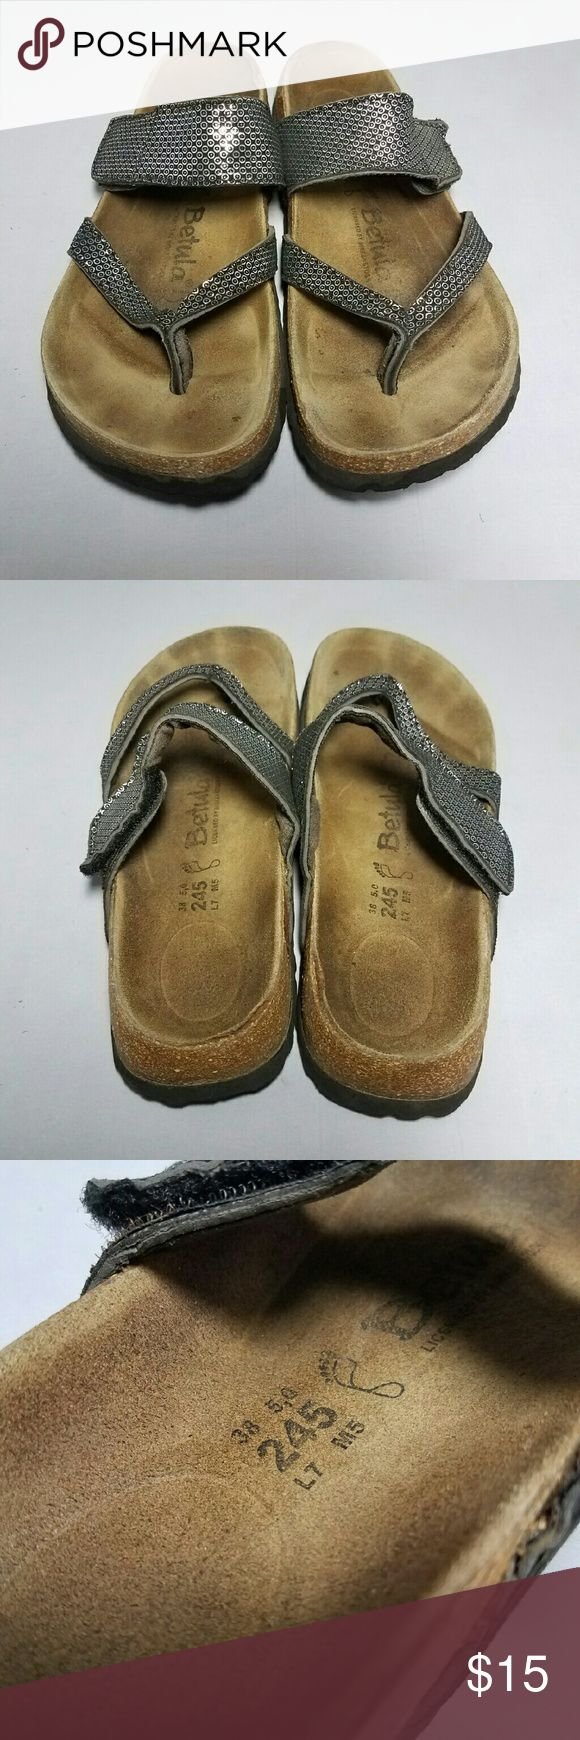 BIRKENSTOCKS BETULA SANDALS SIZE 7 BIRKENSTOCKS BETULA SANDALS SIZE 7 *Size: 7 *Excellent condition  *Smoke-free home! *FAST SHIPPING!  Have a lovely day!   xoxo  @RandomFindings Birkenstock Shoes